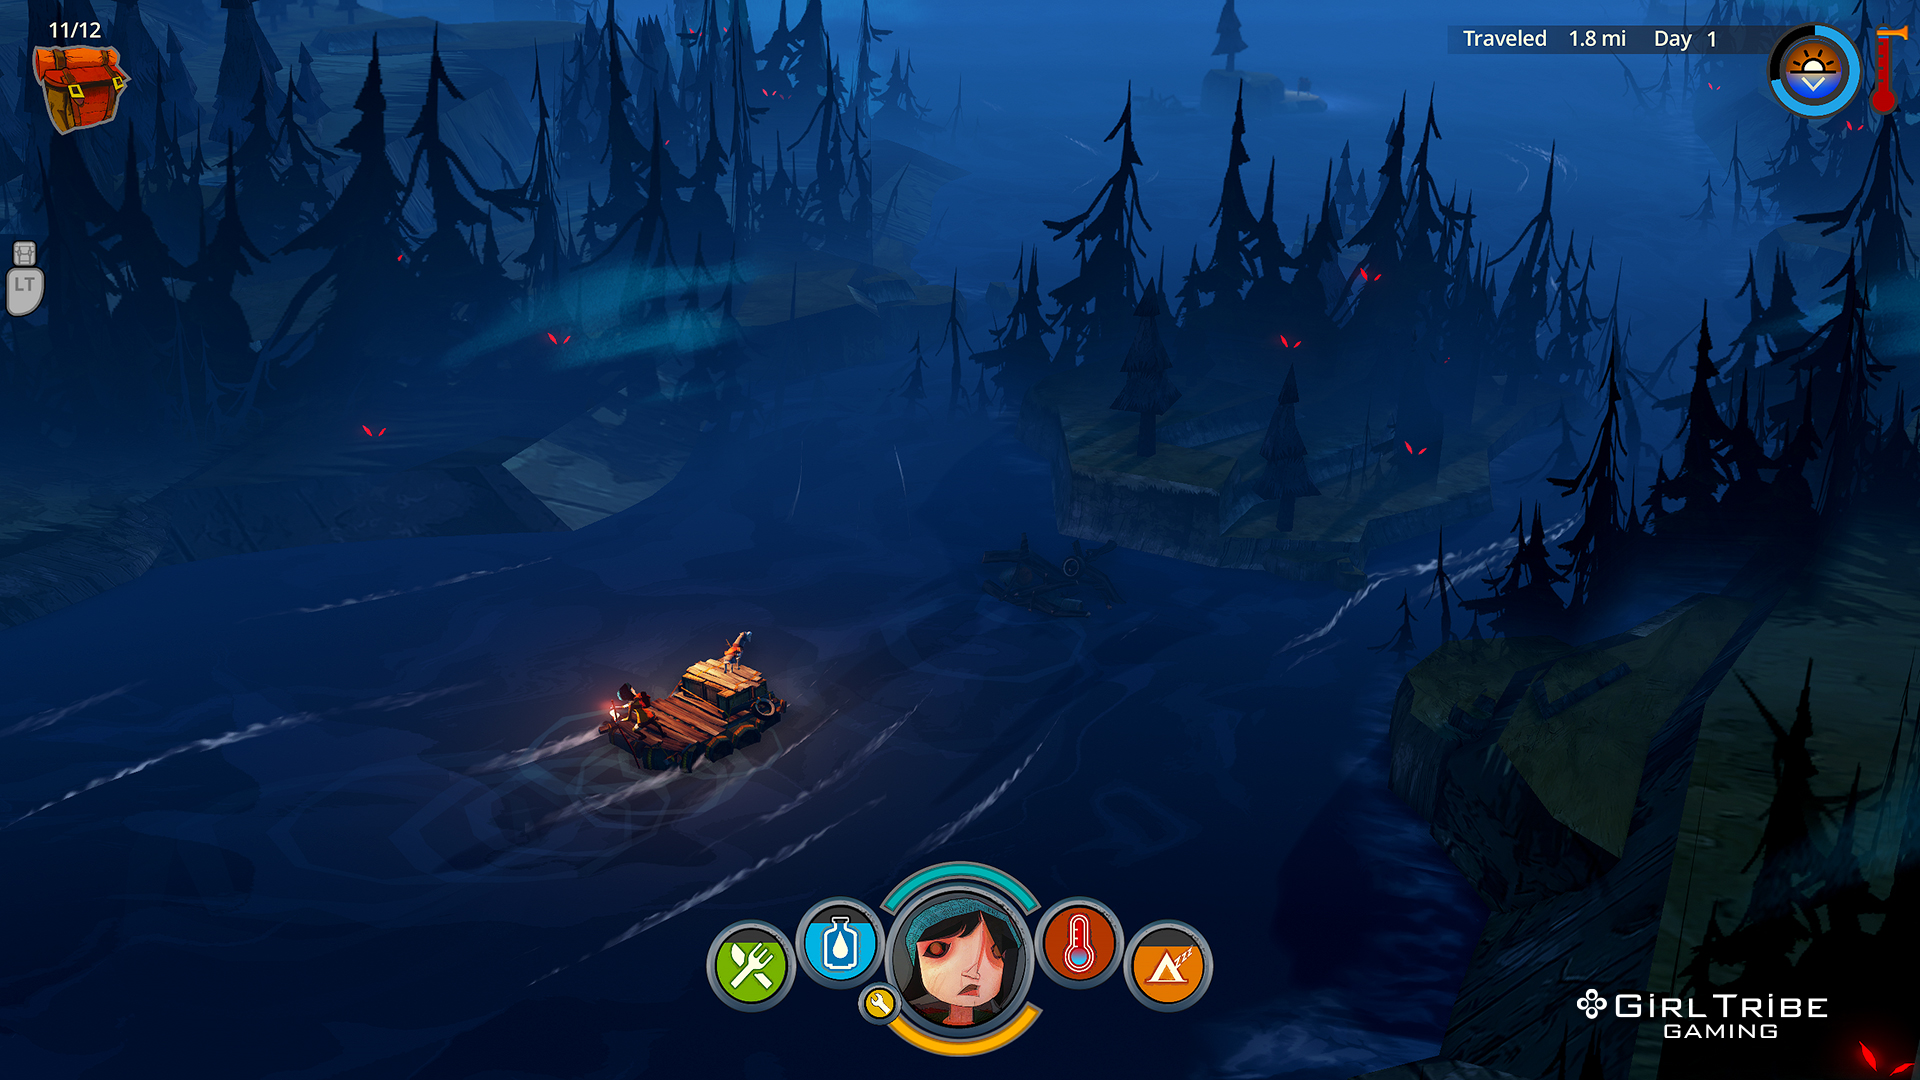 The-Flame-In-The-Flood-Screenshot-5.jpg